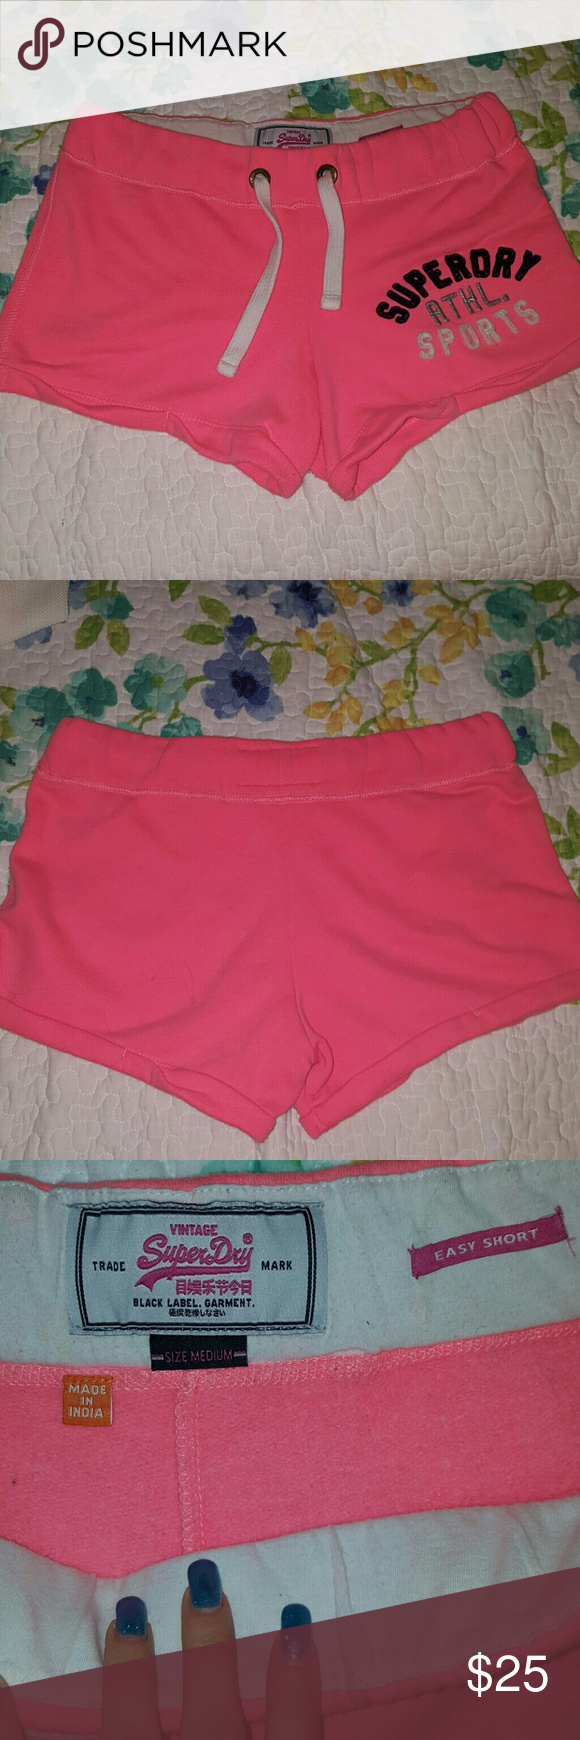 SUPERDRY athletic shorts lightly used size M SUPERDRY athletic shorts lightly used like new size M in bright pink color. I'm selling it because I lost weight and it's too big for me now. Superdry Shorts Bermudas